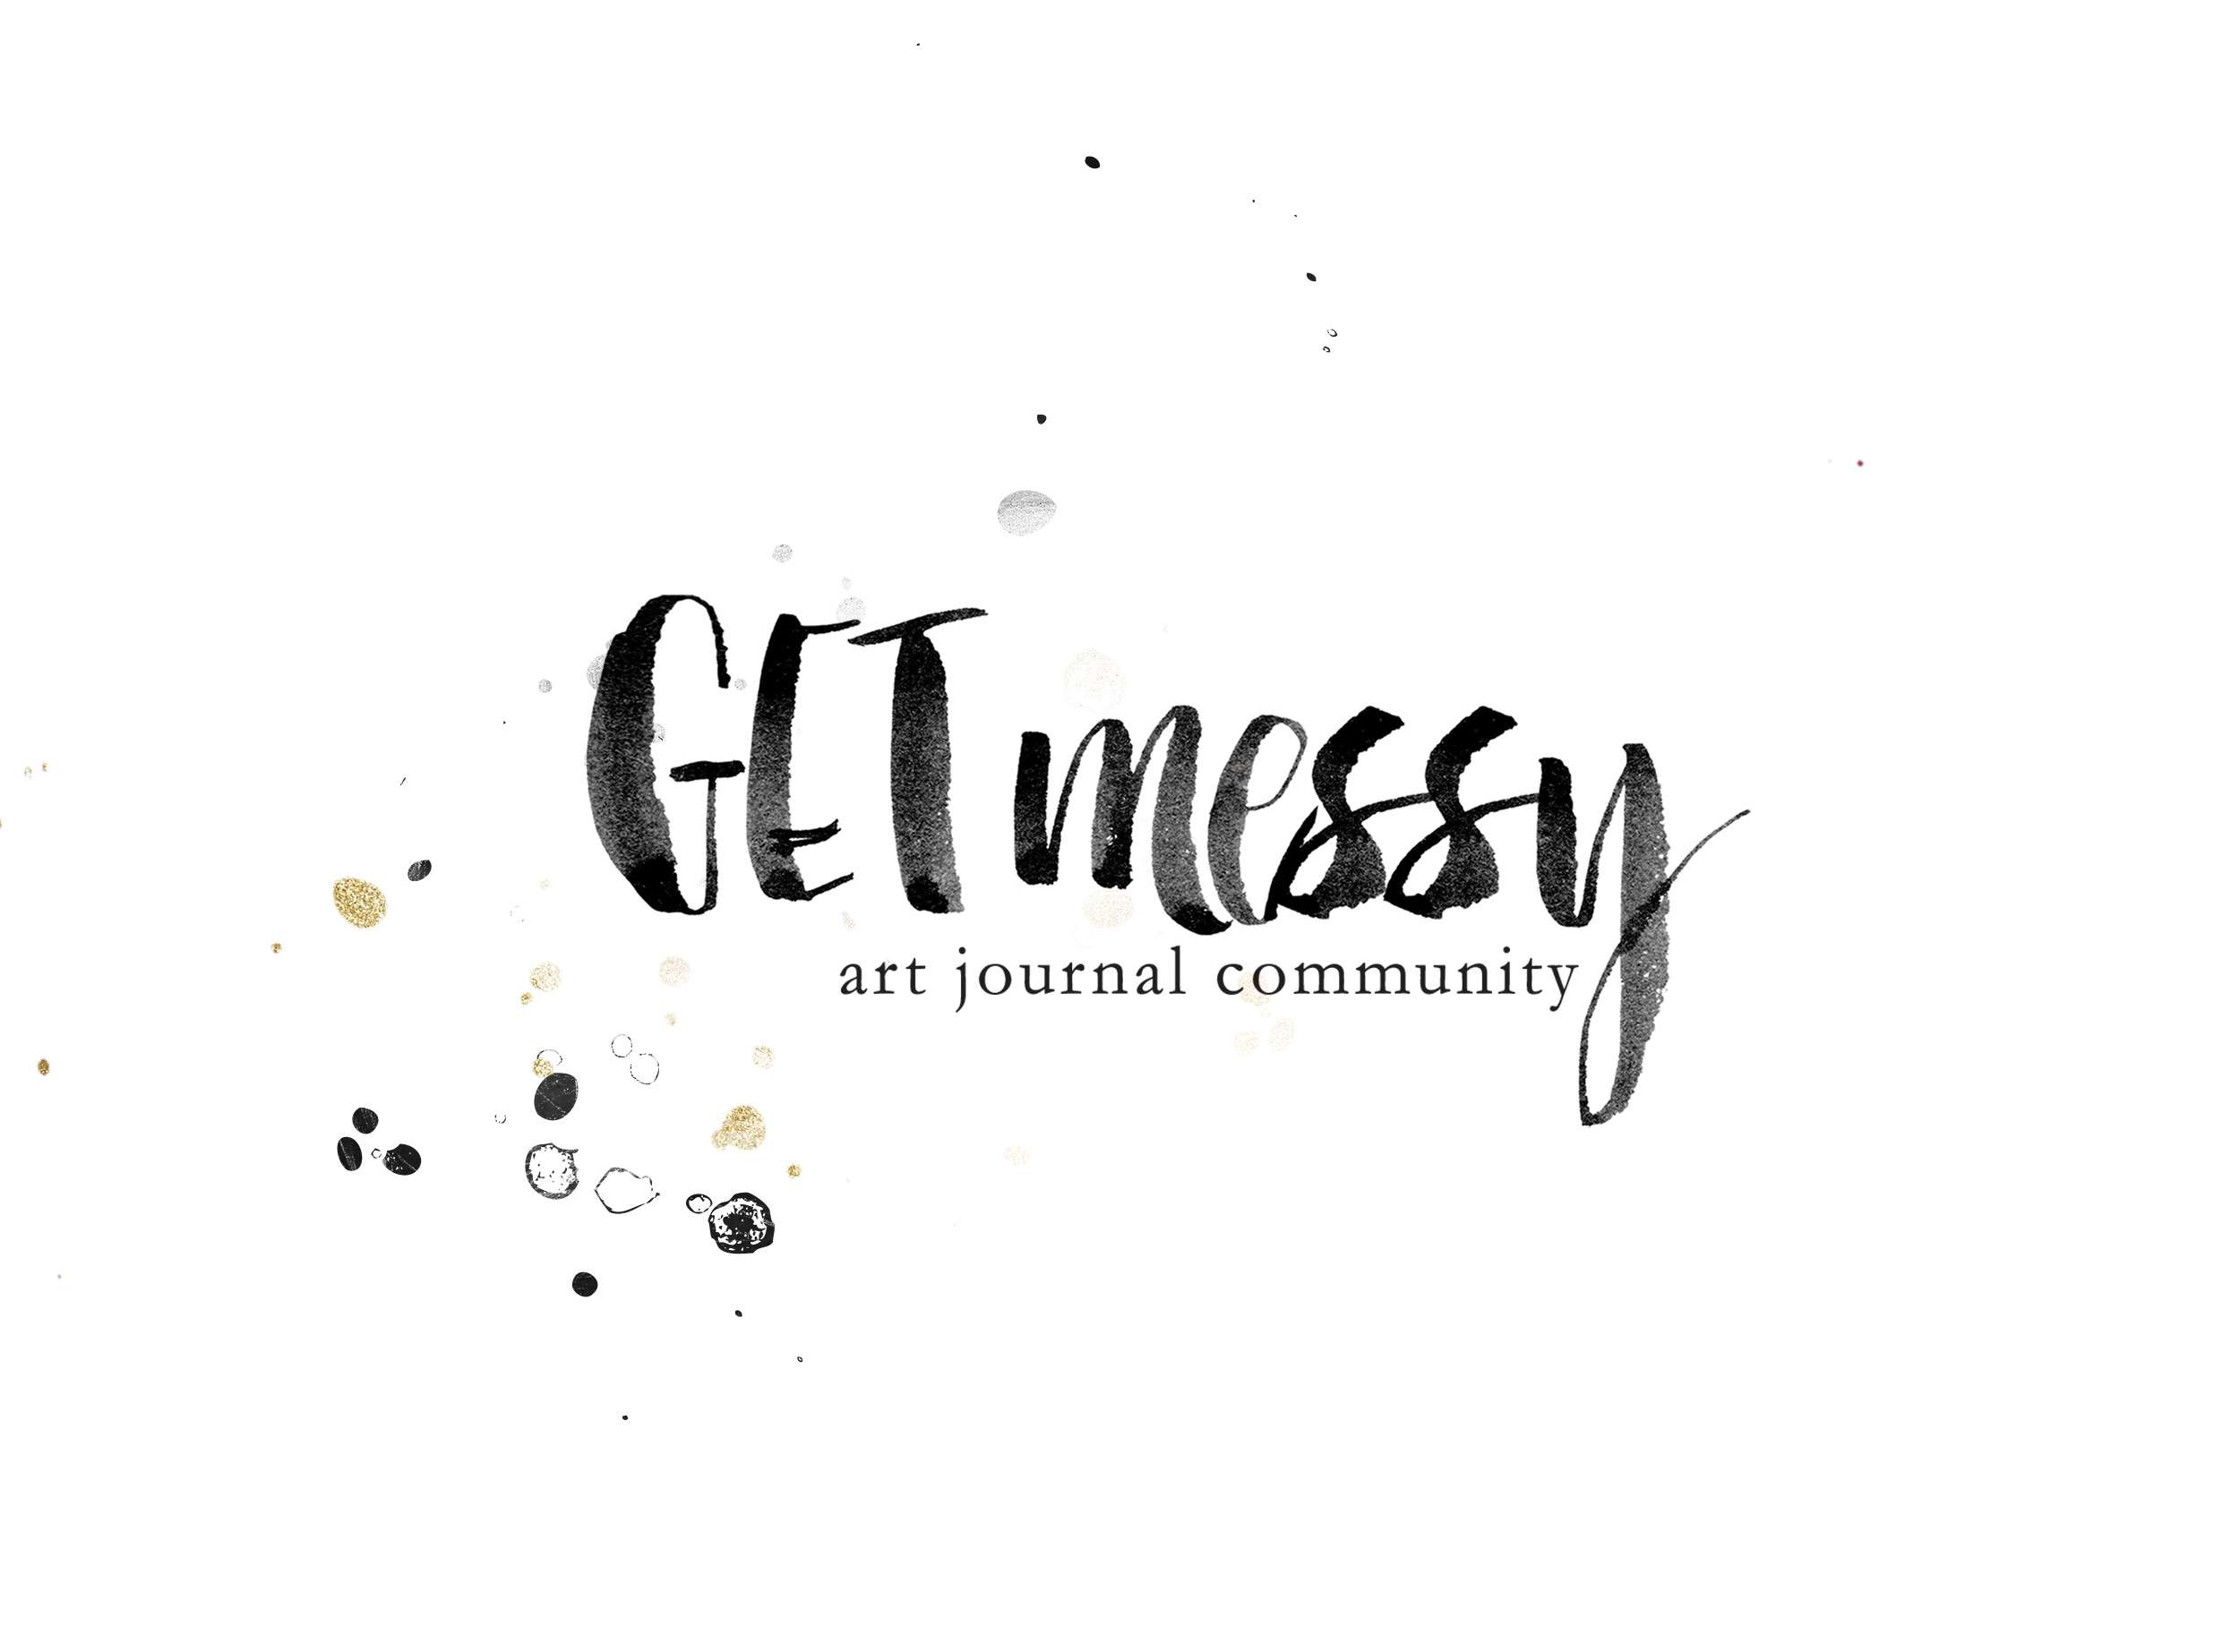 GetMessy-overlay.png